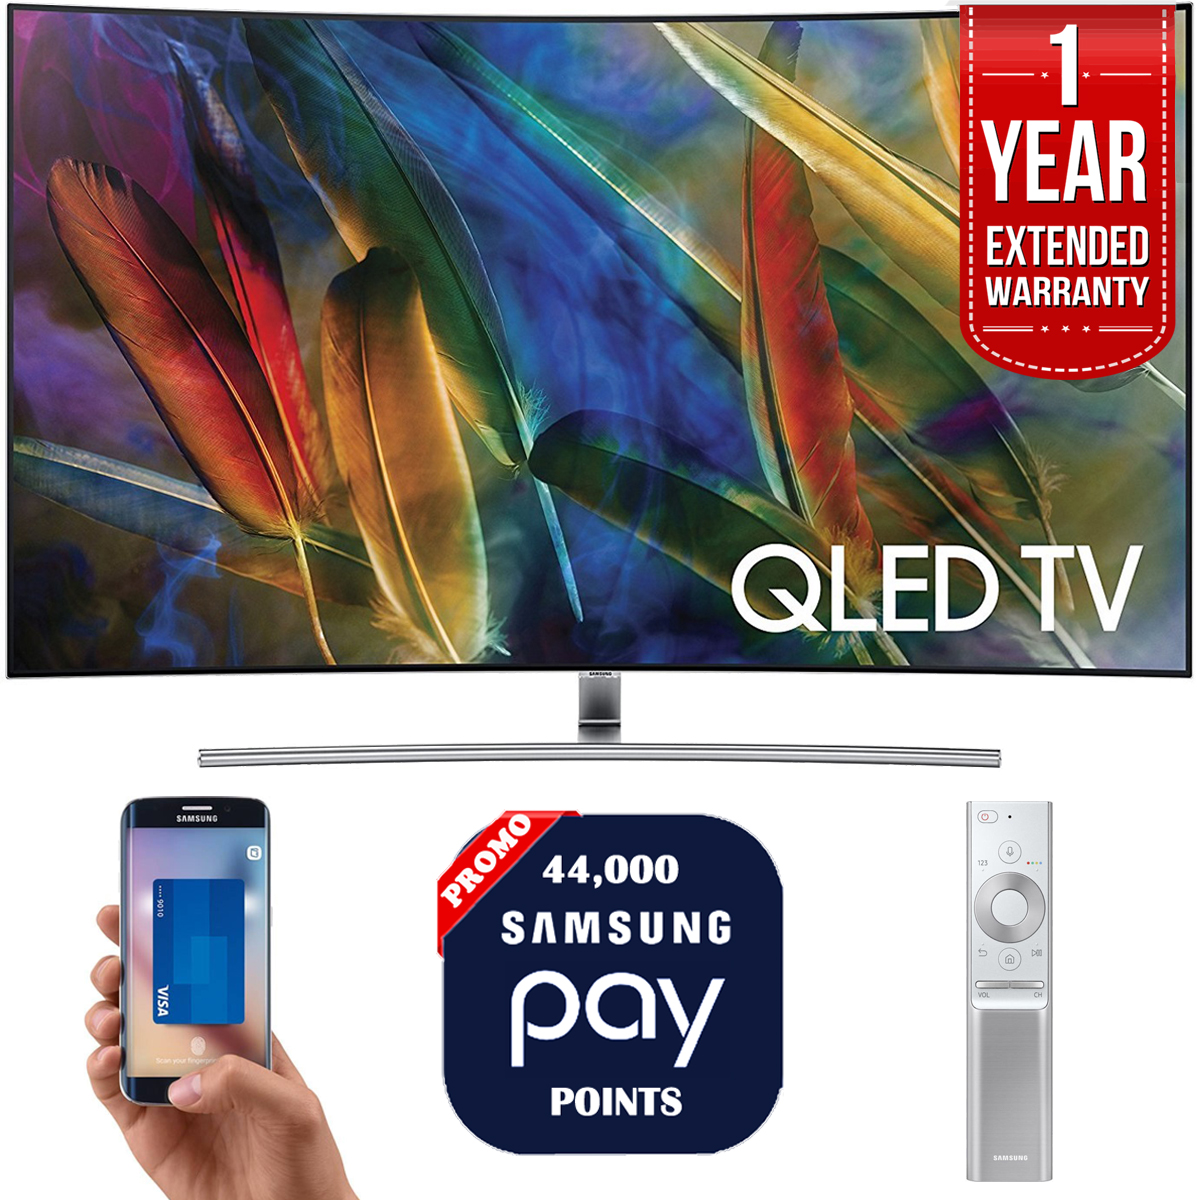 "Samsung QN55Q7C 55"" 4K UHD Smart QLED TV + 1 Year Extended Warranty + 44,000 Pay Points"